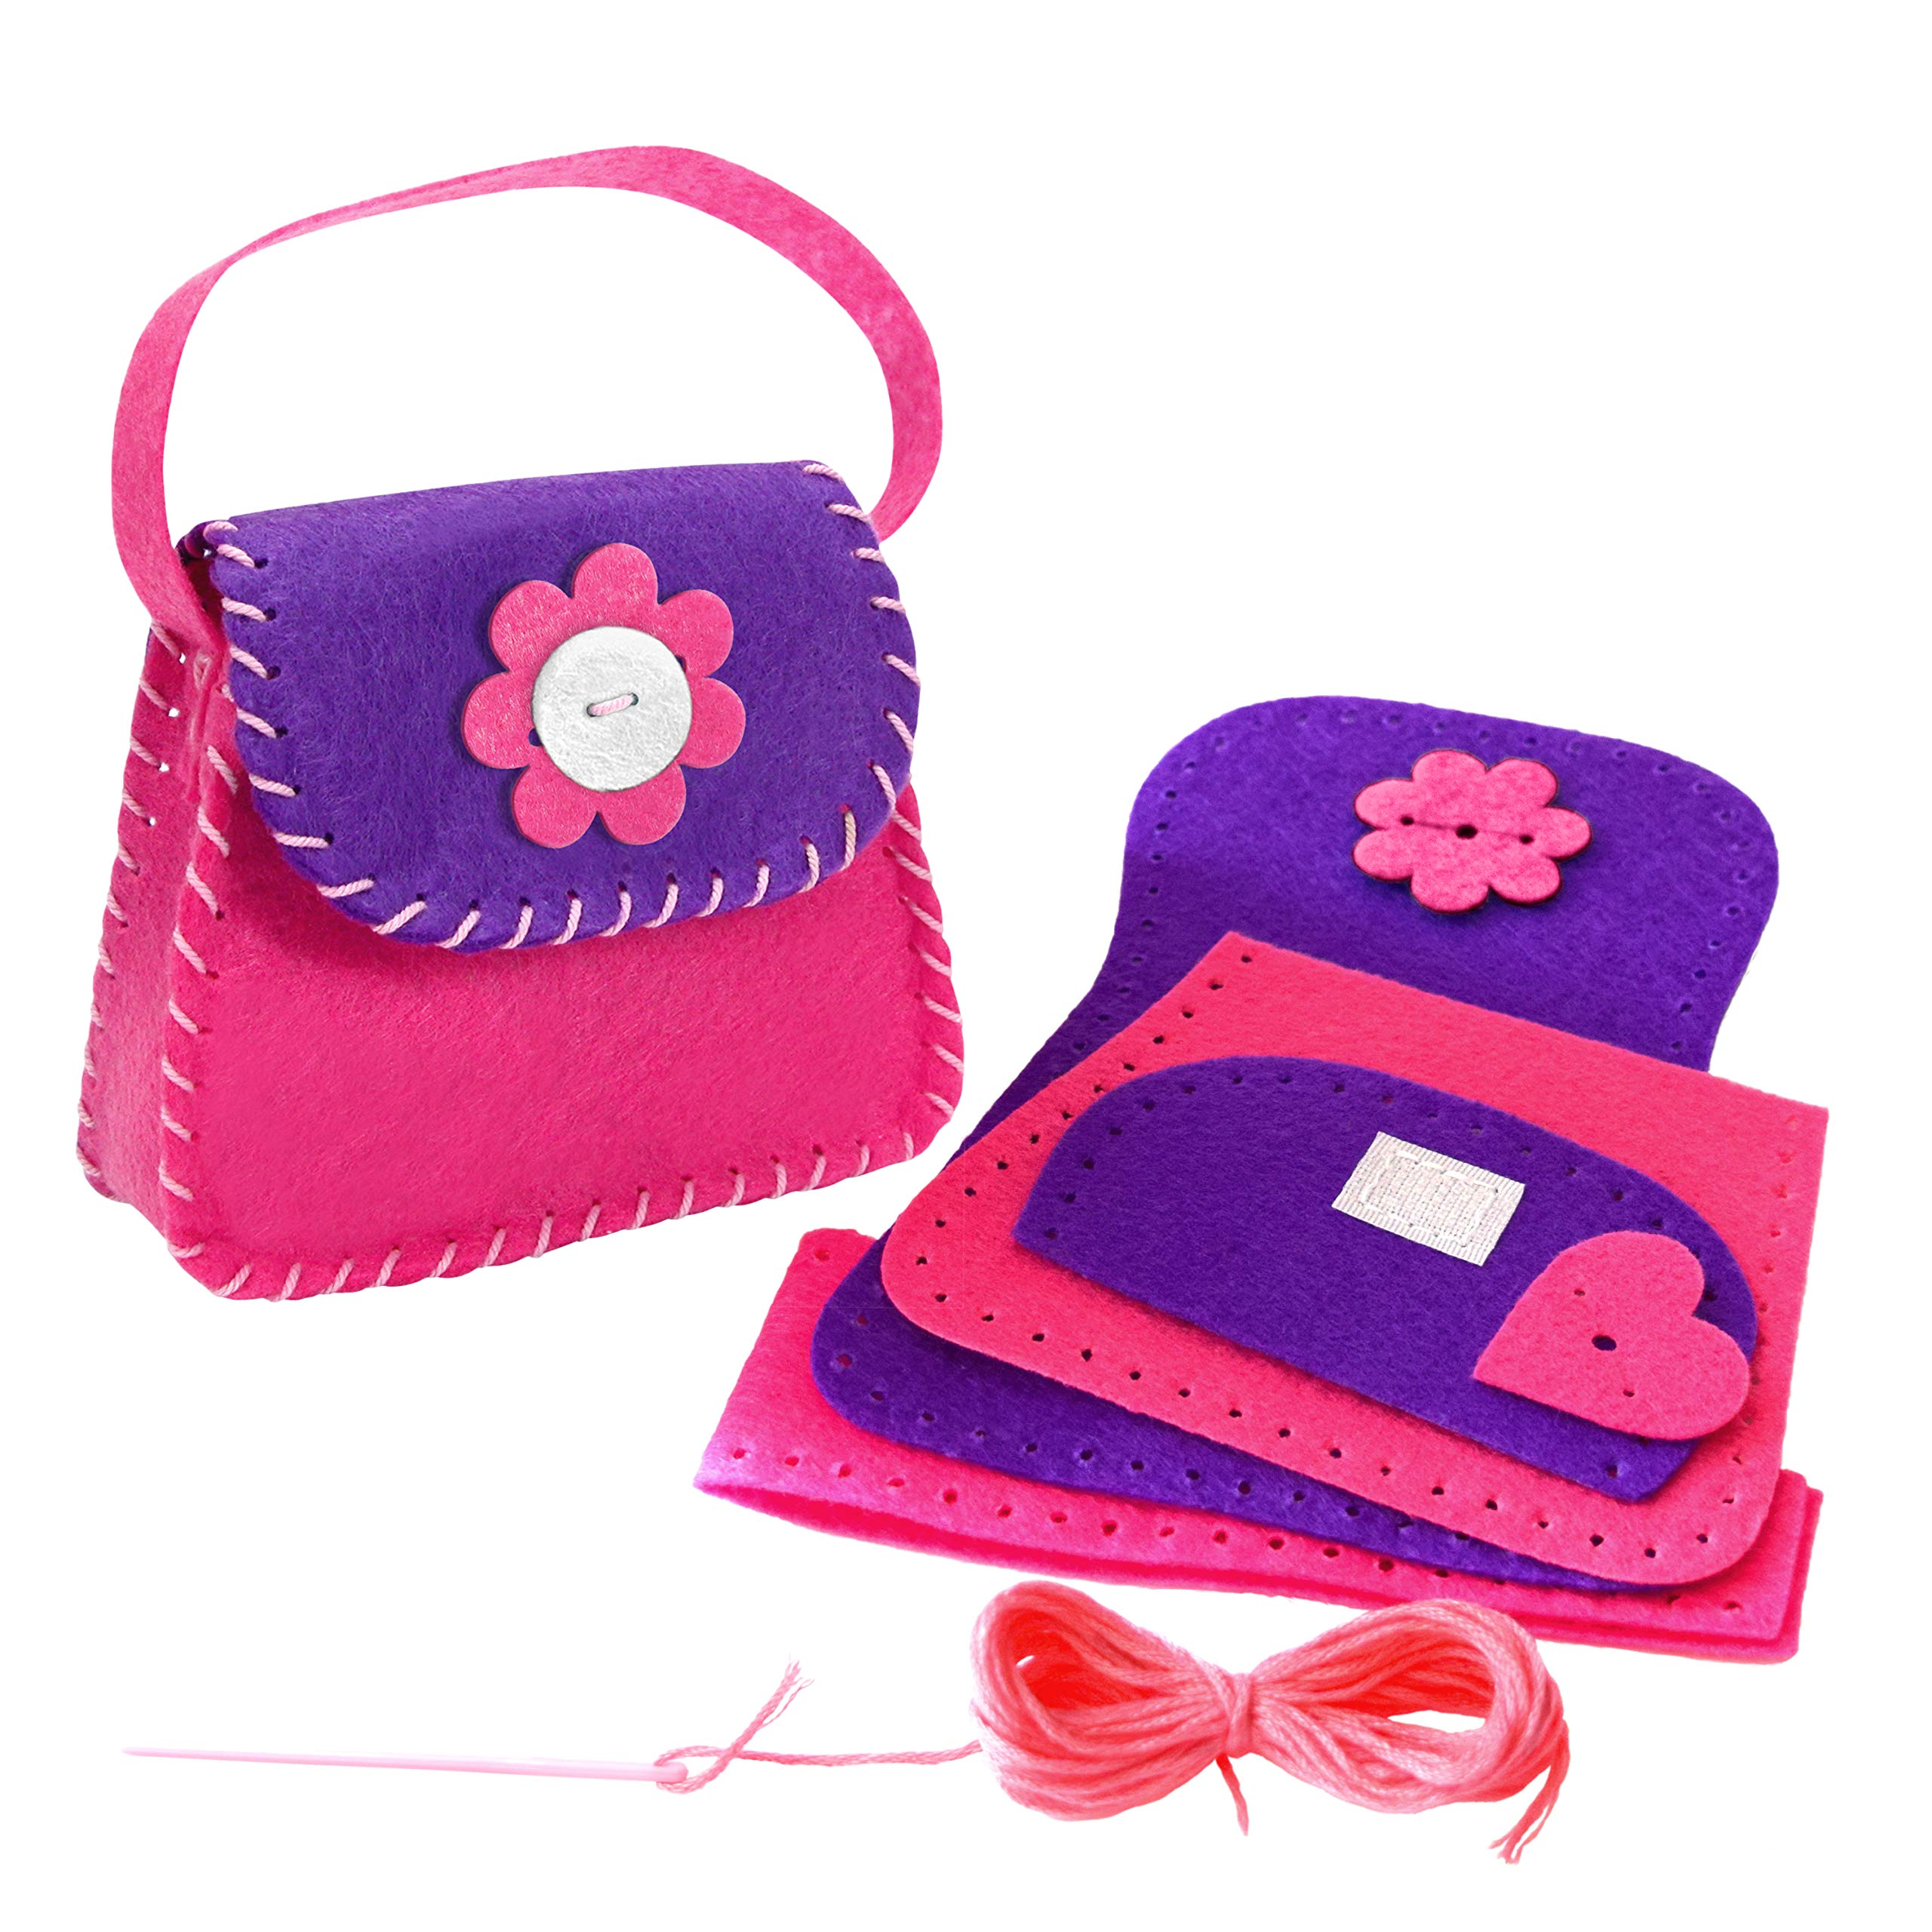 Learn How to Sew Doll´s Felt Bag for Kids Aged 6 to 11. Perfect Beginner Sewing Kit for Kids. First Mini Sewing Project and Crafts Kits for Children by Happy & Creative Crafts